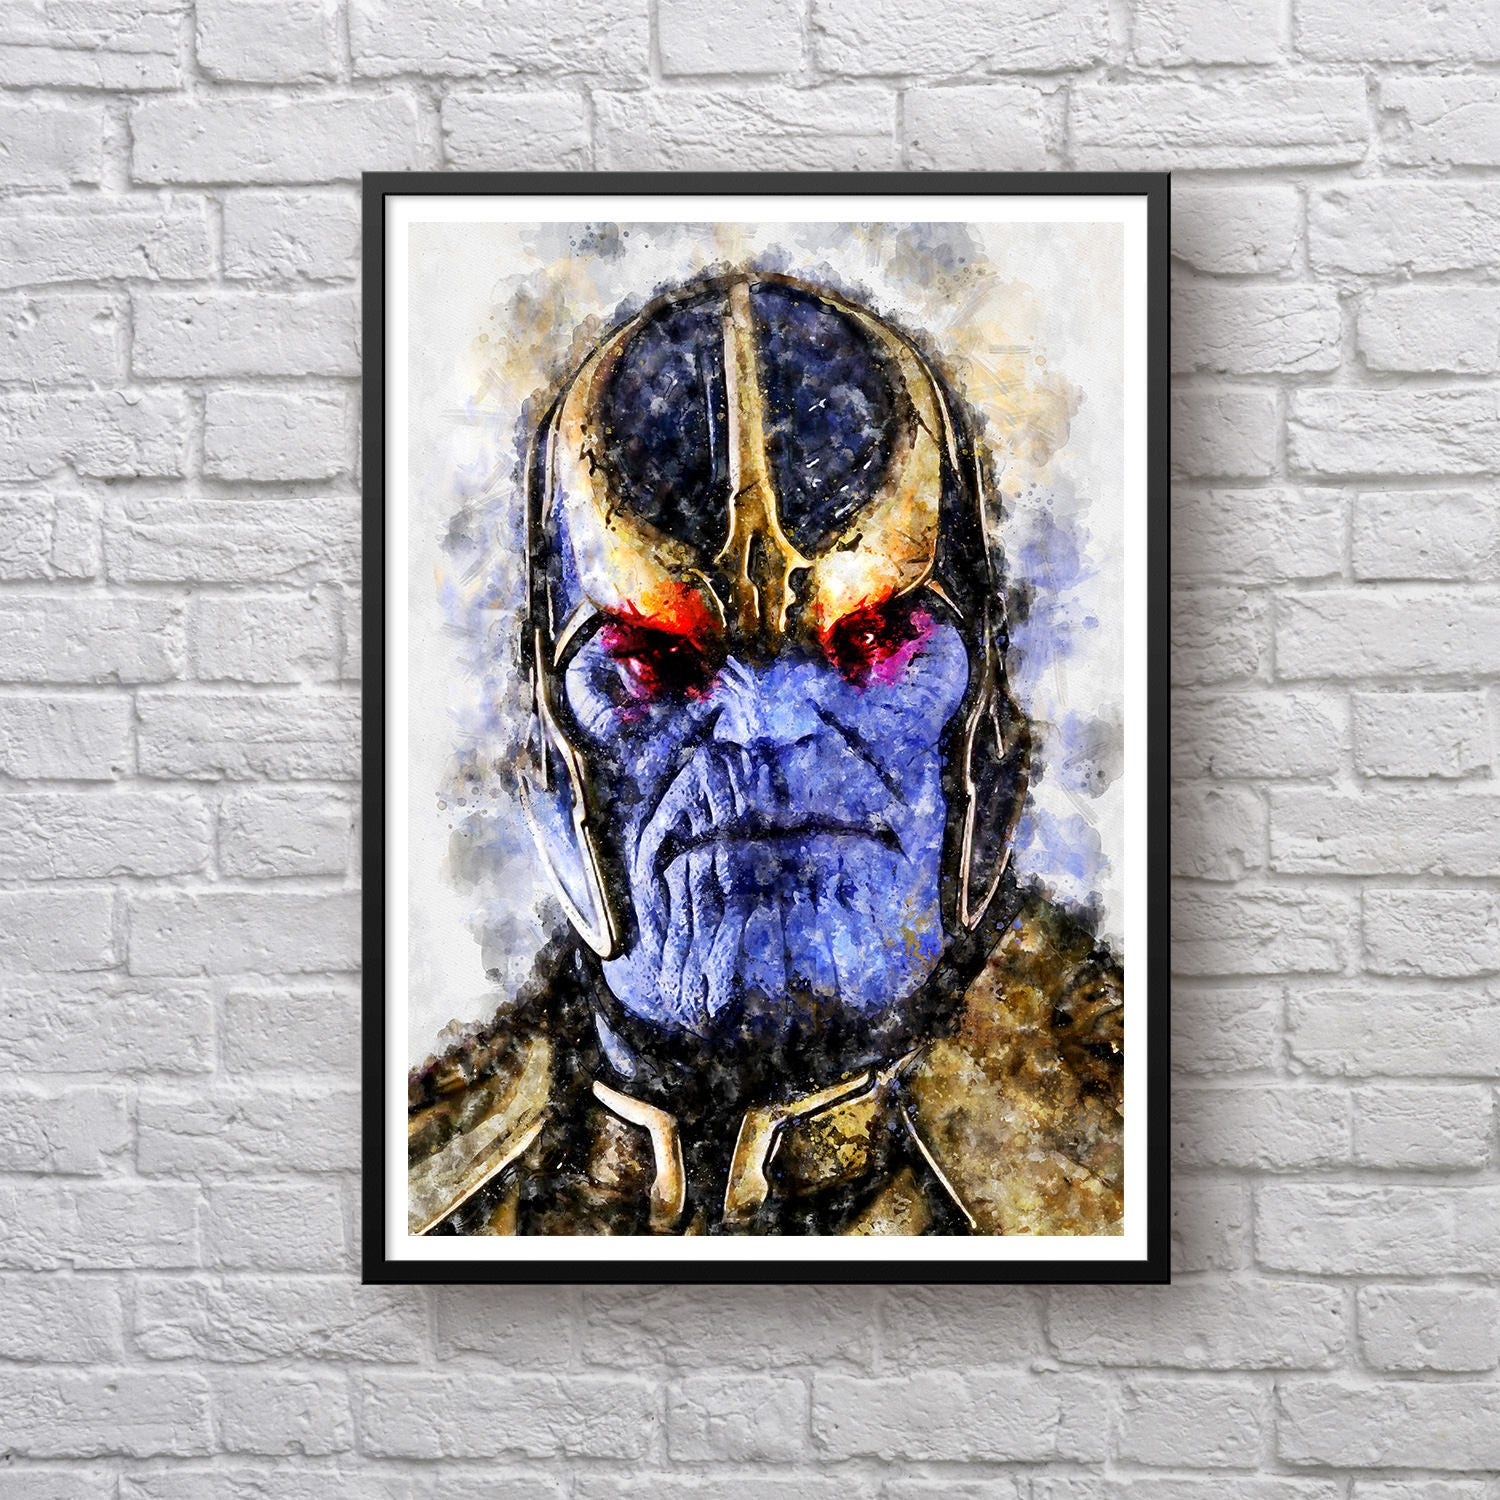 Avengers Watercolor: Thanos Watercolor Print Avengers Infinity War Poster